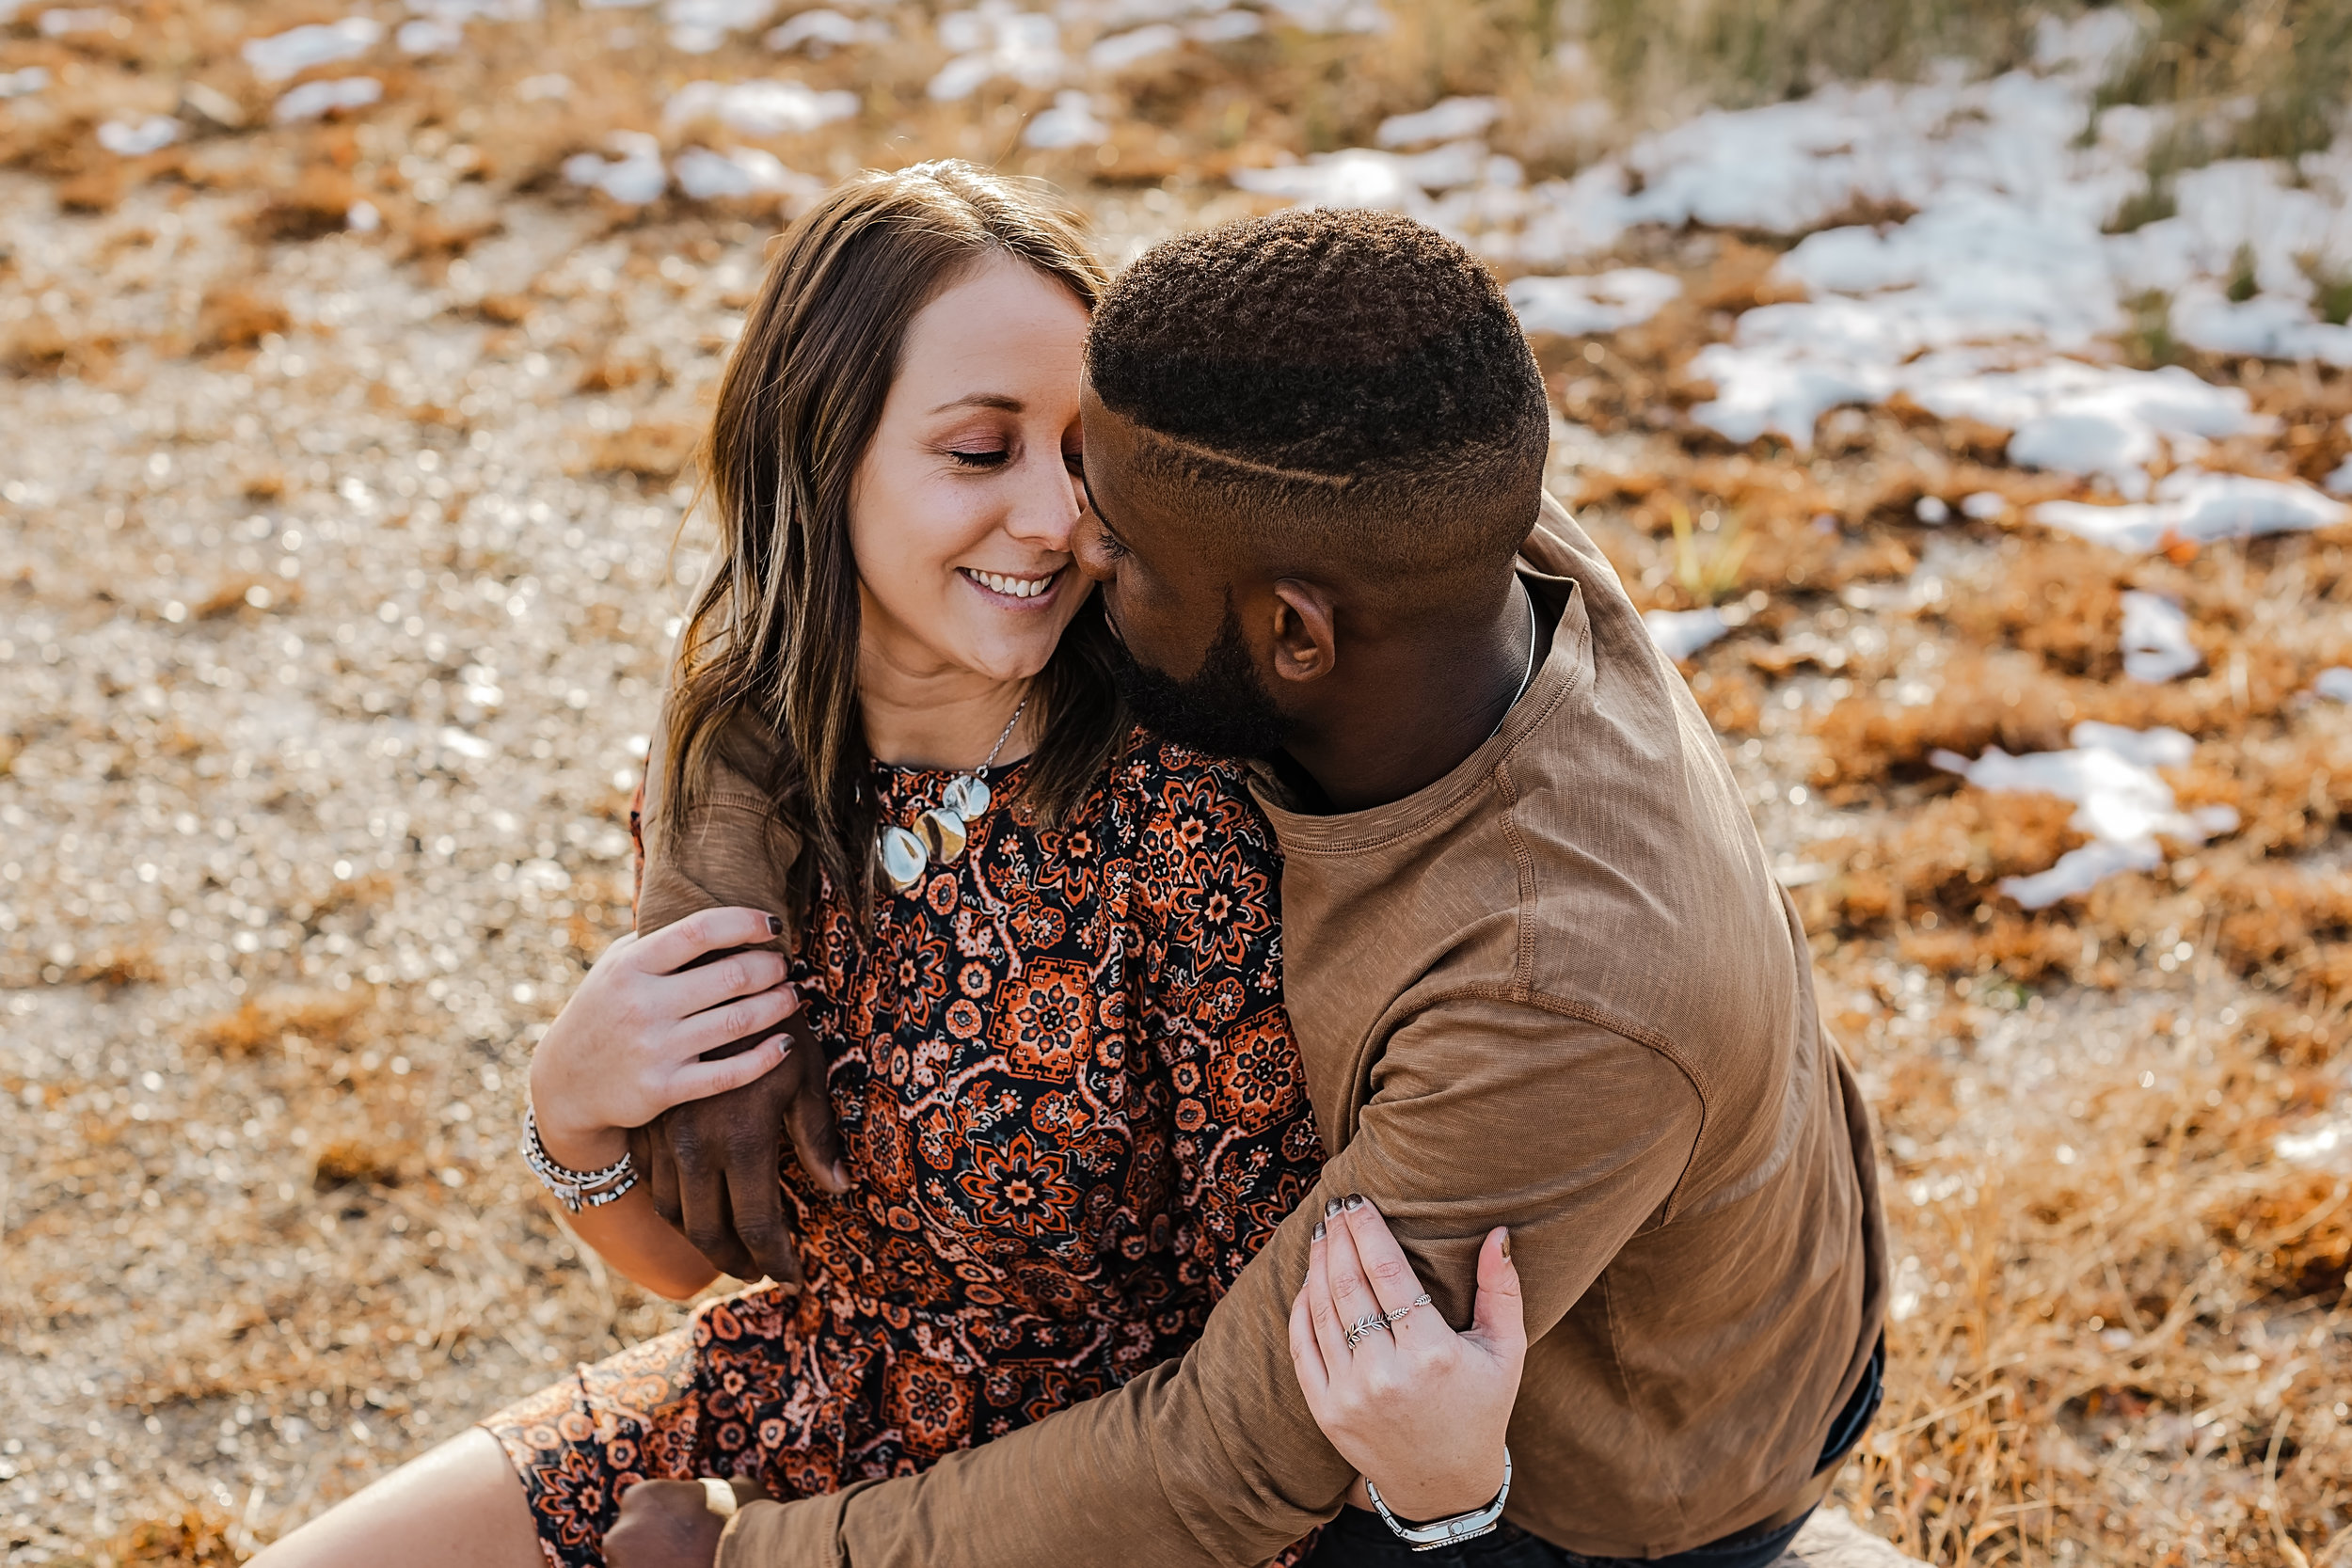 Taylor + Anthony - Couples session at a local state park